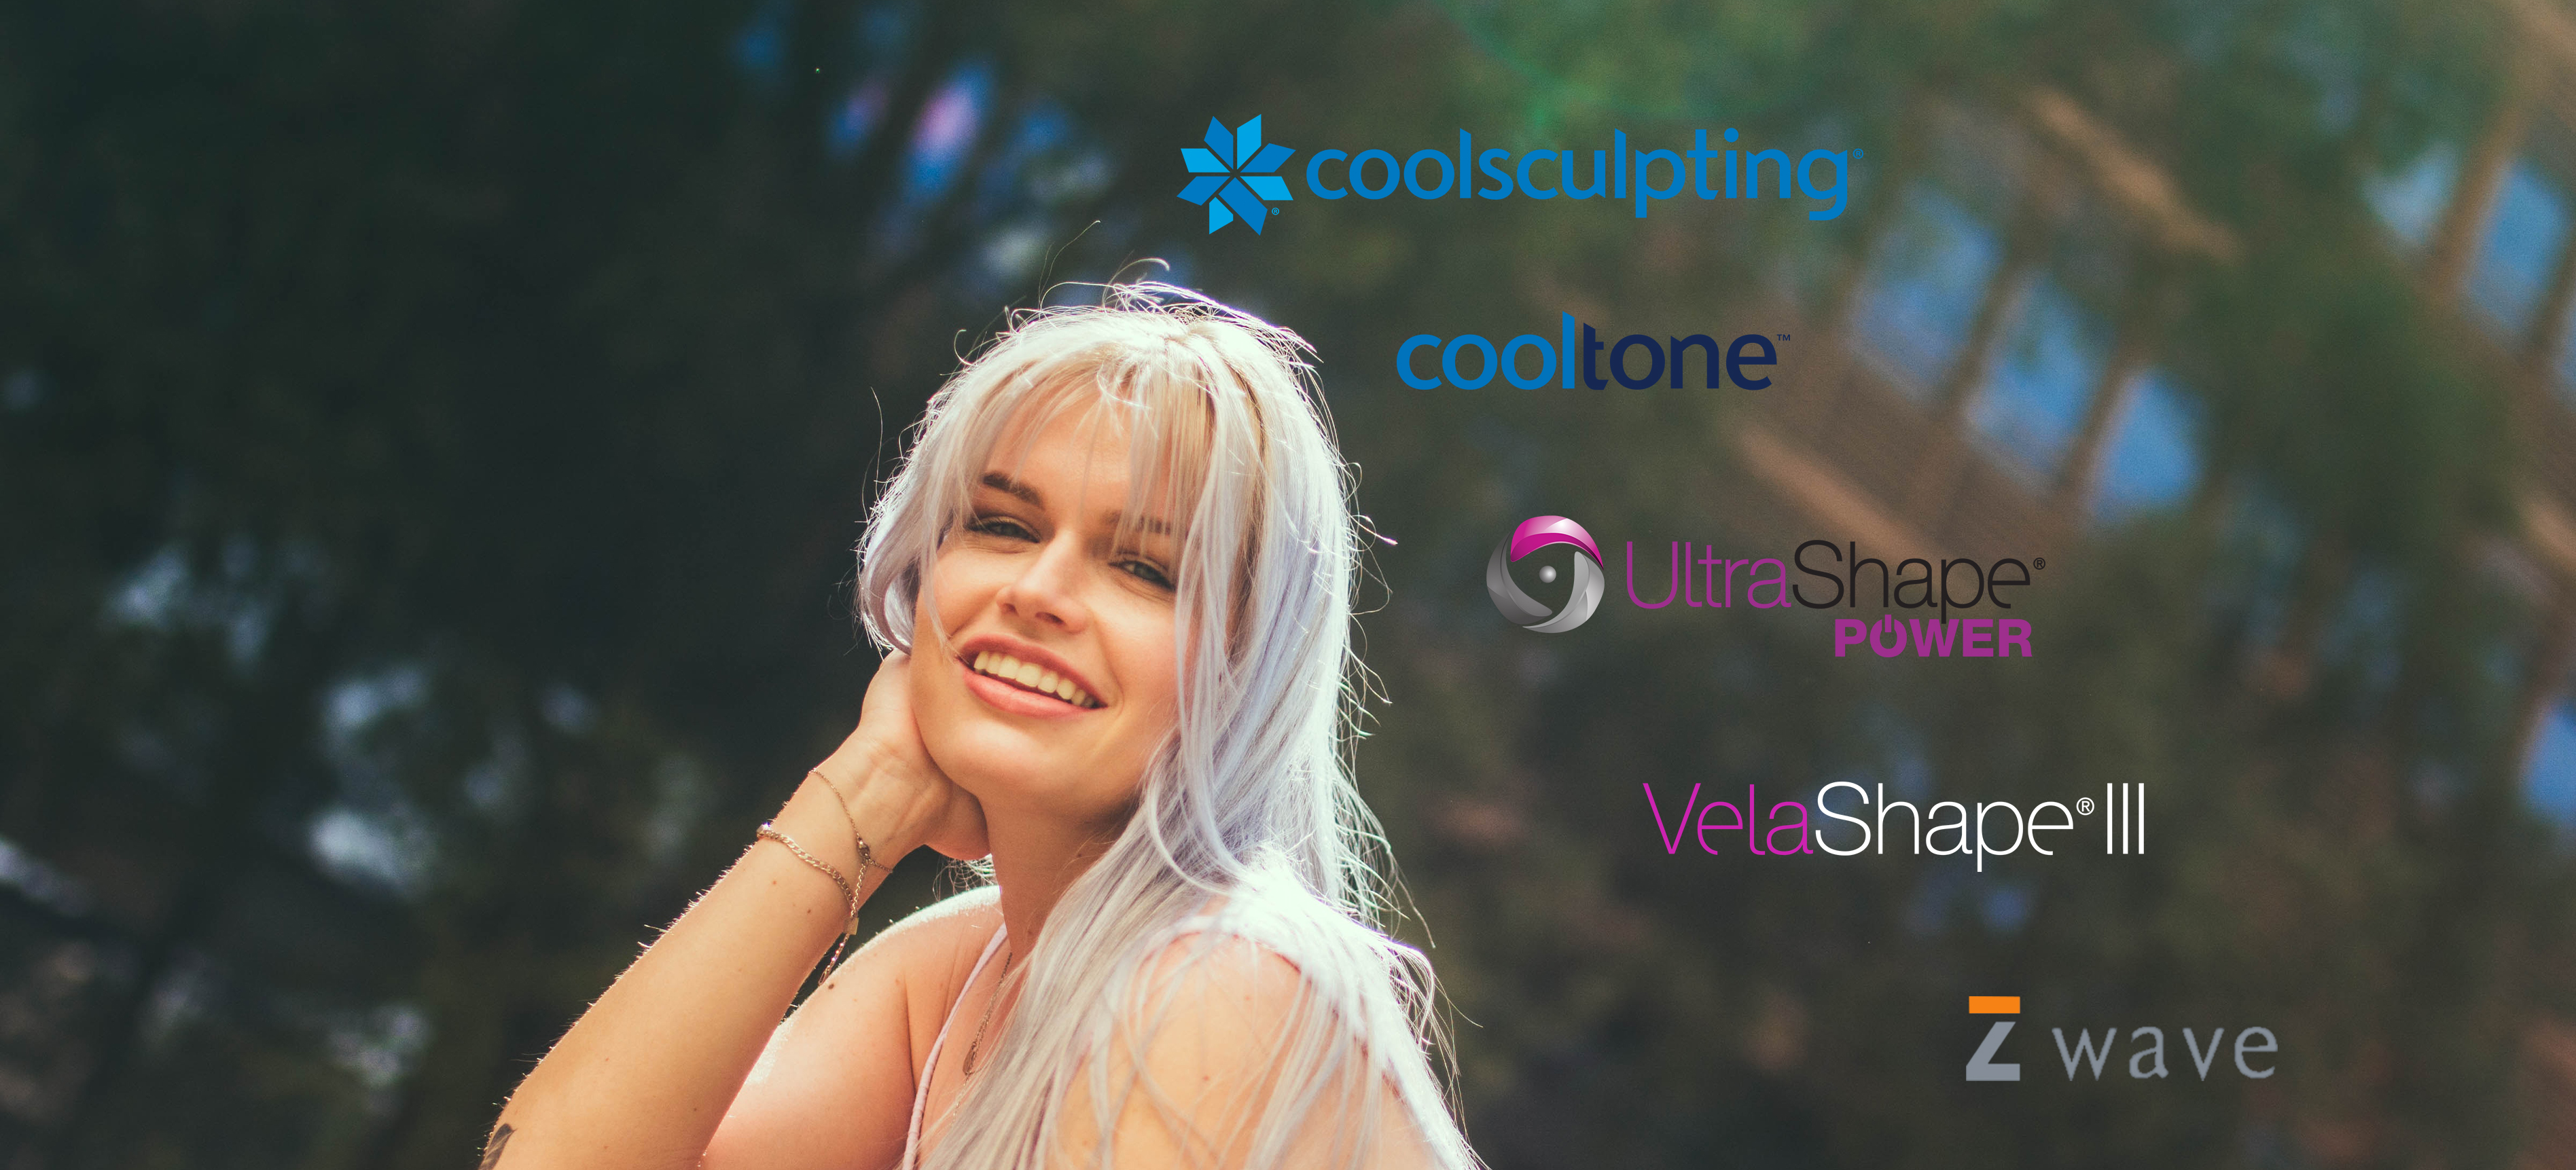 Testimonial Page Banner Coolsculpting